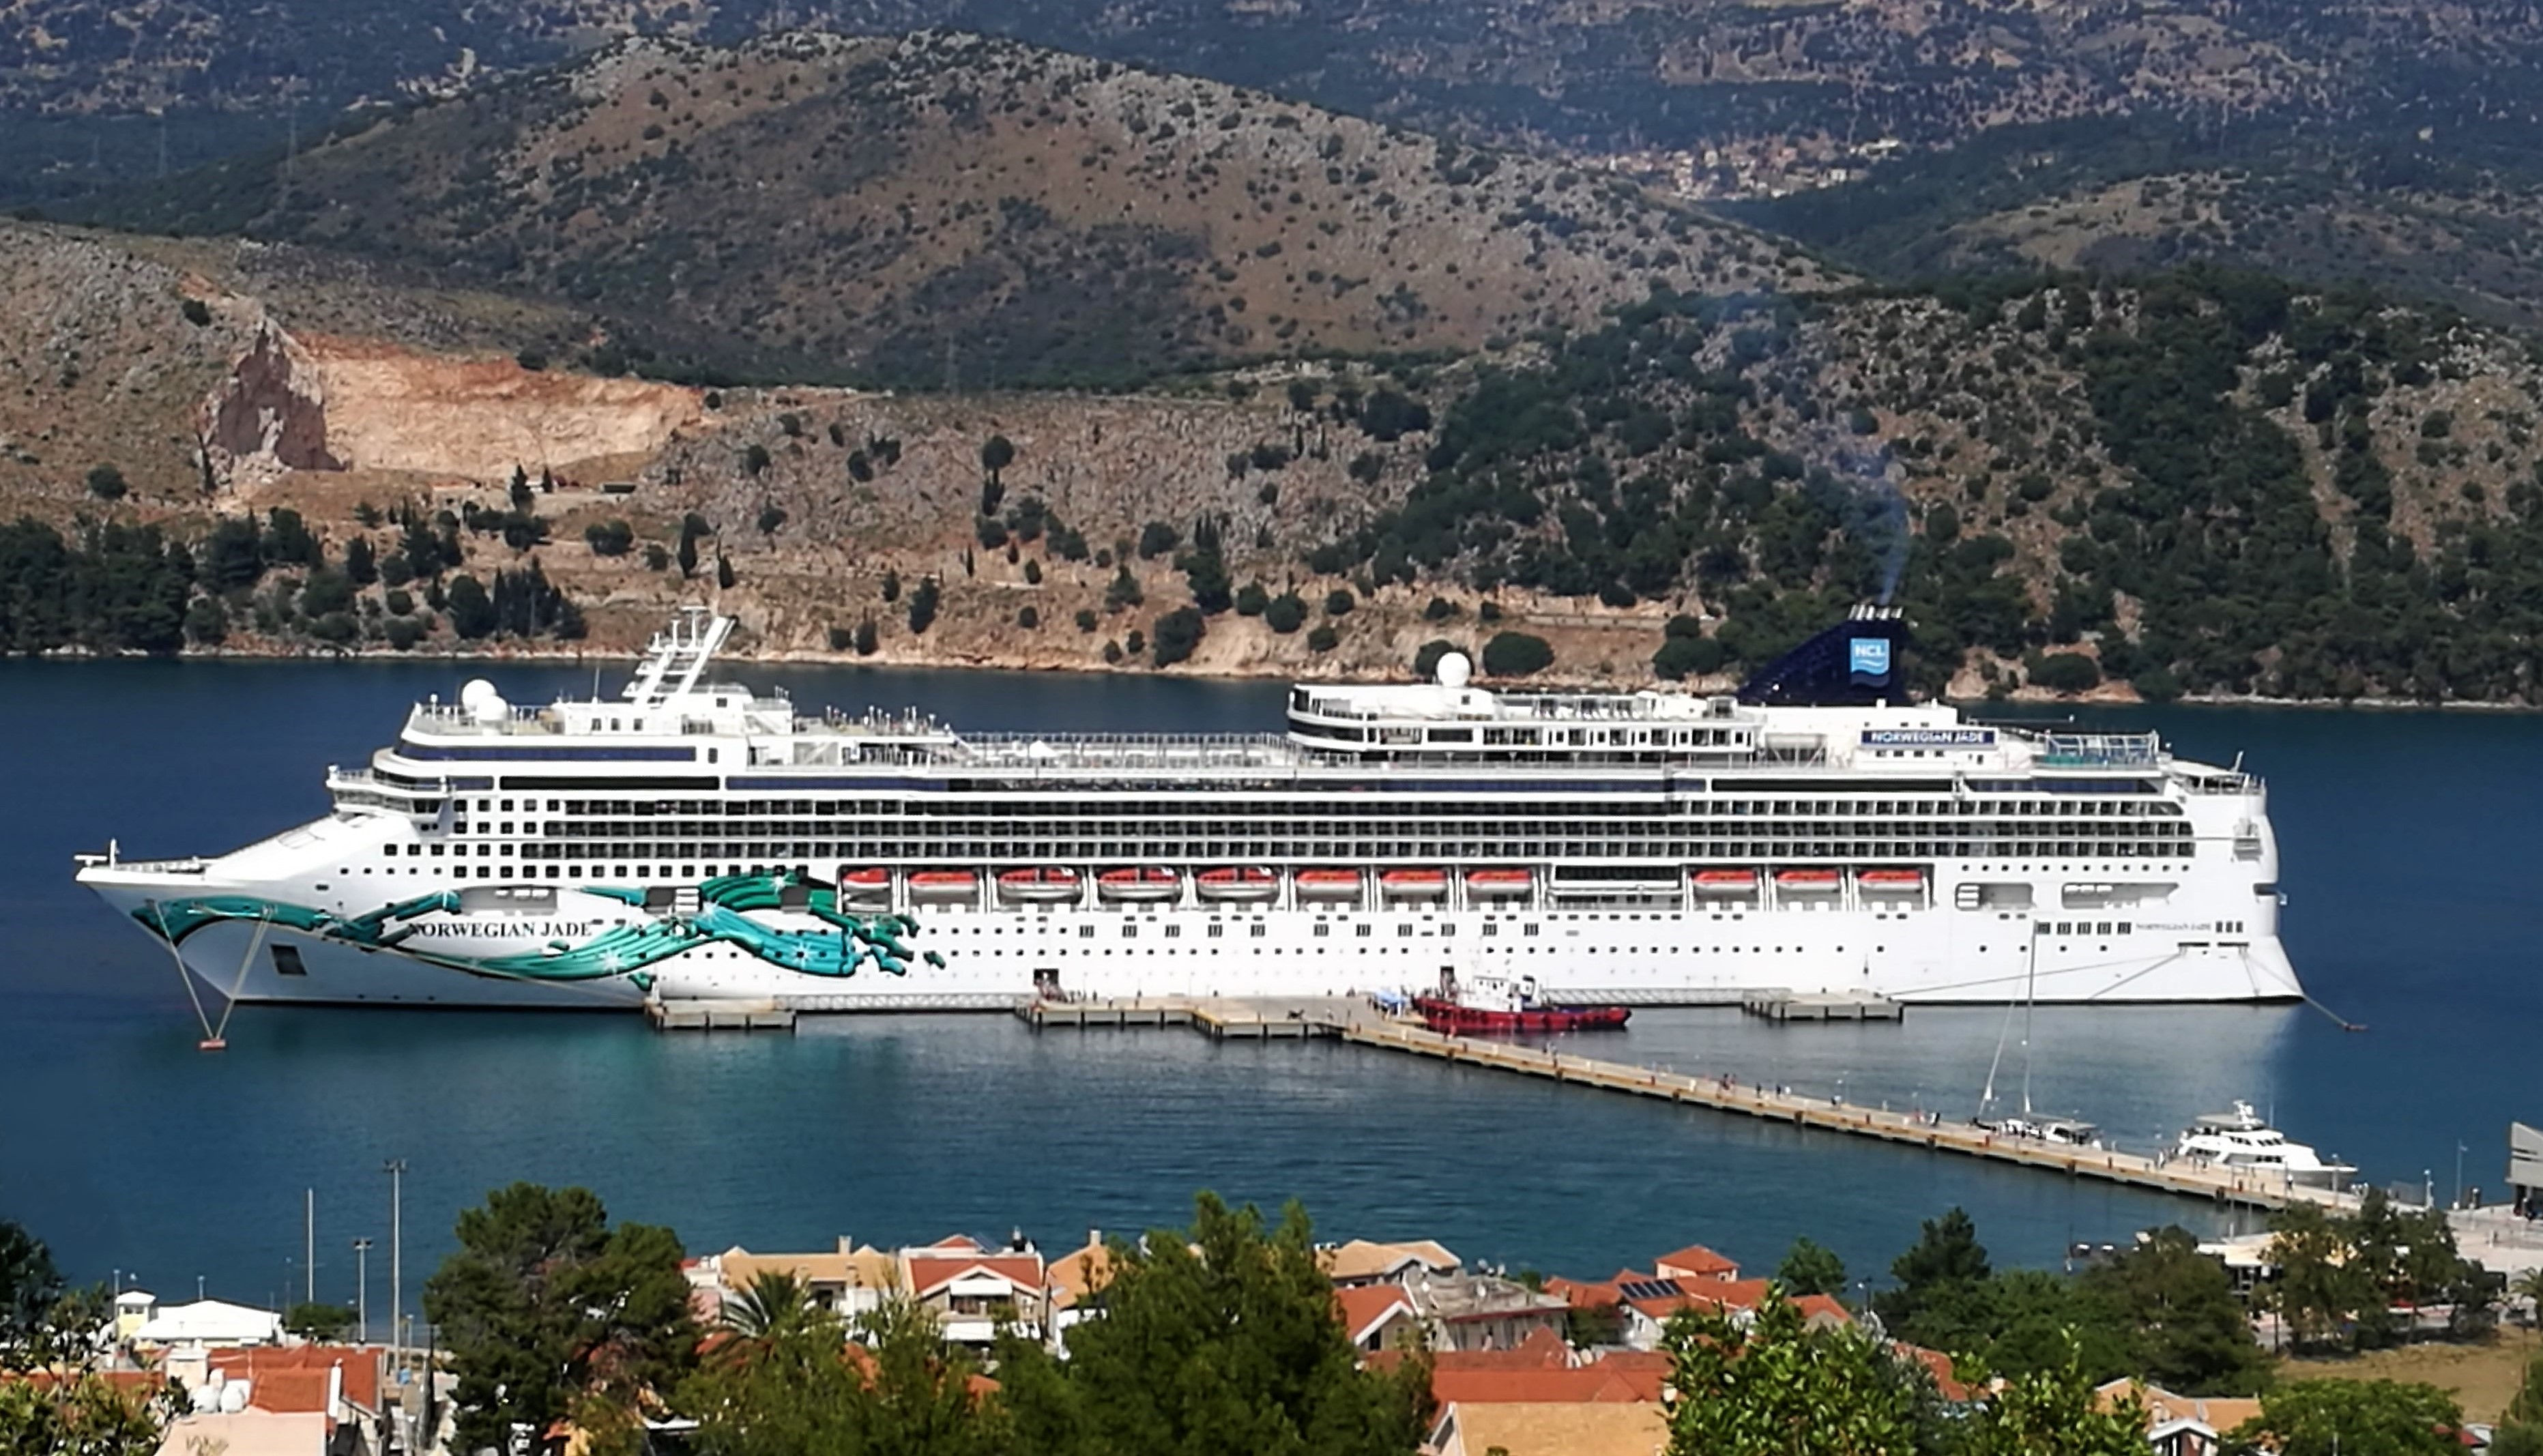 Norwegian Jade - Wikipedia